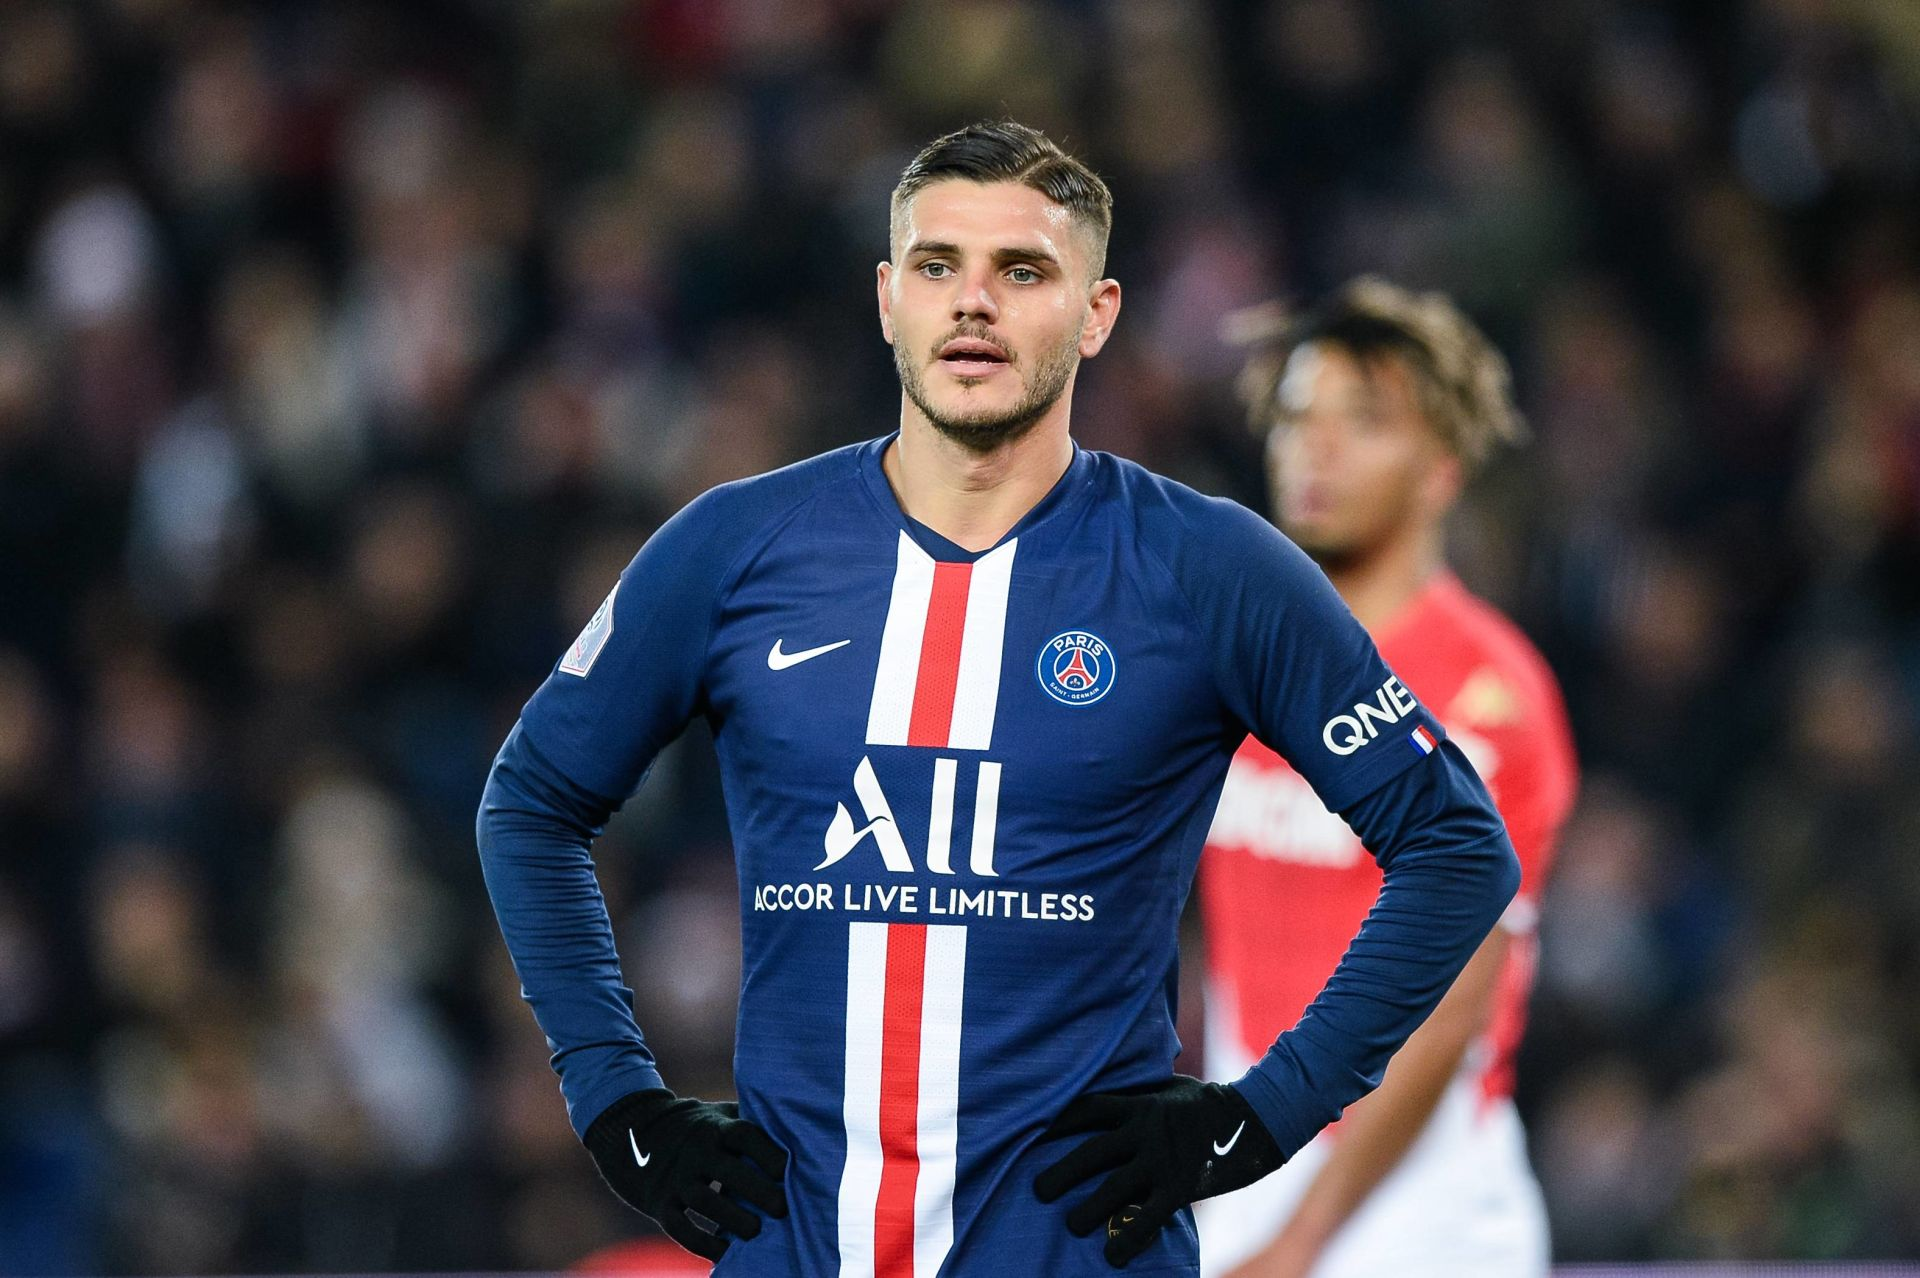 Mauro ICARDI of Paris Saint Germain during the French Ligue 1 Soccer match between Paris Saint-Germain and AS Monaco at Parc des Princes on January 12, 2020 in Paris, France. (Photo by Baptiste Fernandez/Icon Sport) LIGA FRANCUSKA PILKA NOZNA SEZON 2019/2020 FOT. ICON SPORT/NEWSPIX.PL POLAND ONLY! --- Newspix.pl *** Local Caption *** www.newspix.pl mail us: info@newspix.pl call us: 0048 022 23 22 222 --- Polish Picture Agency by Ringier Axel Springer Poland